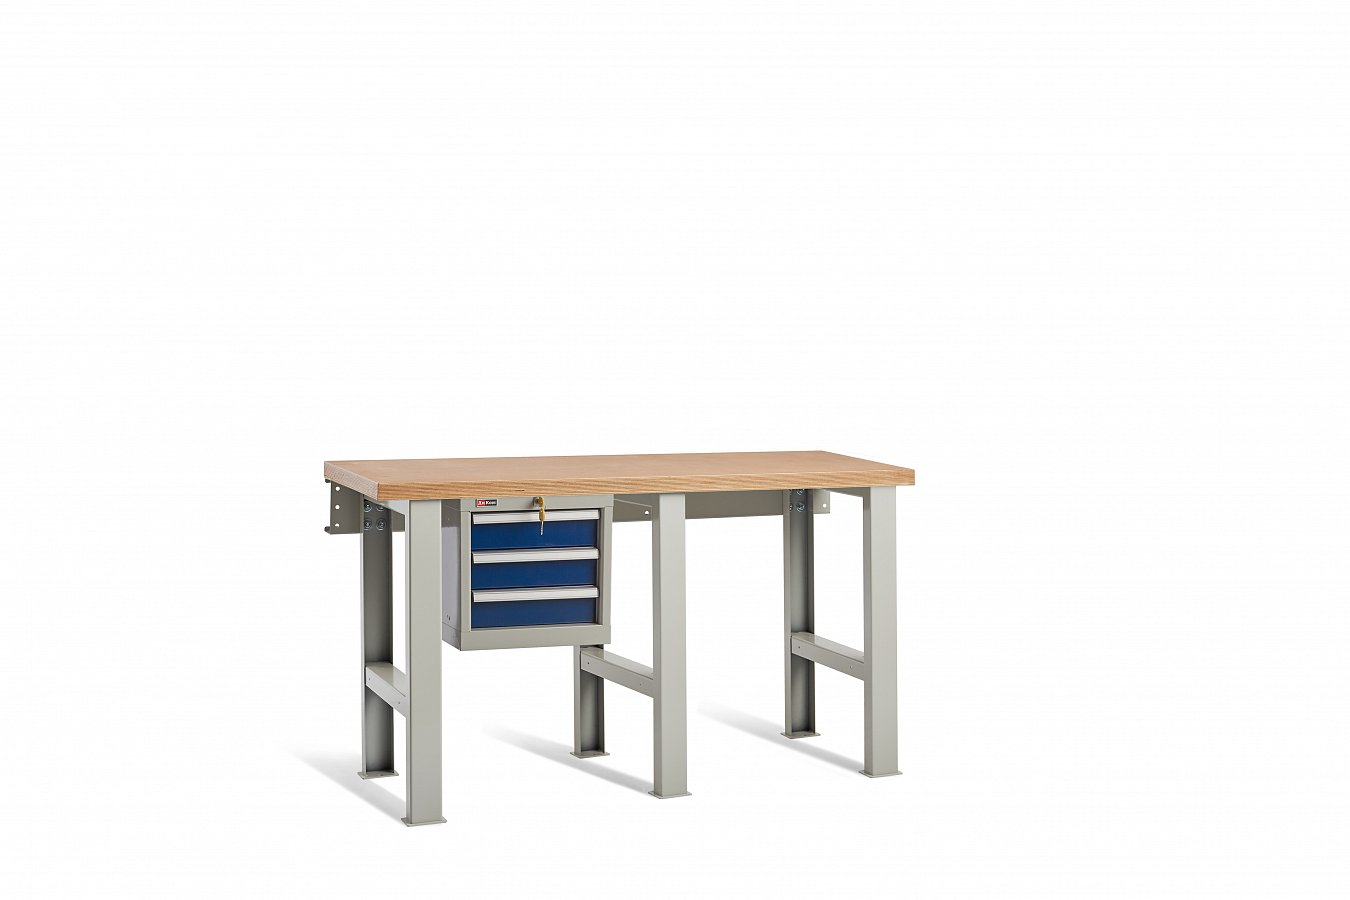 DiKom Workbench VS-150-02 (5)